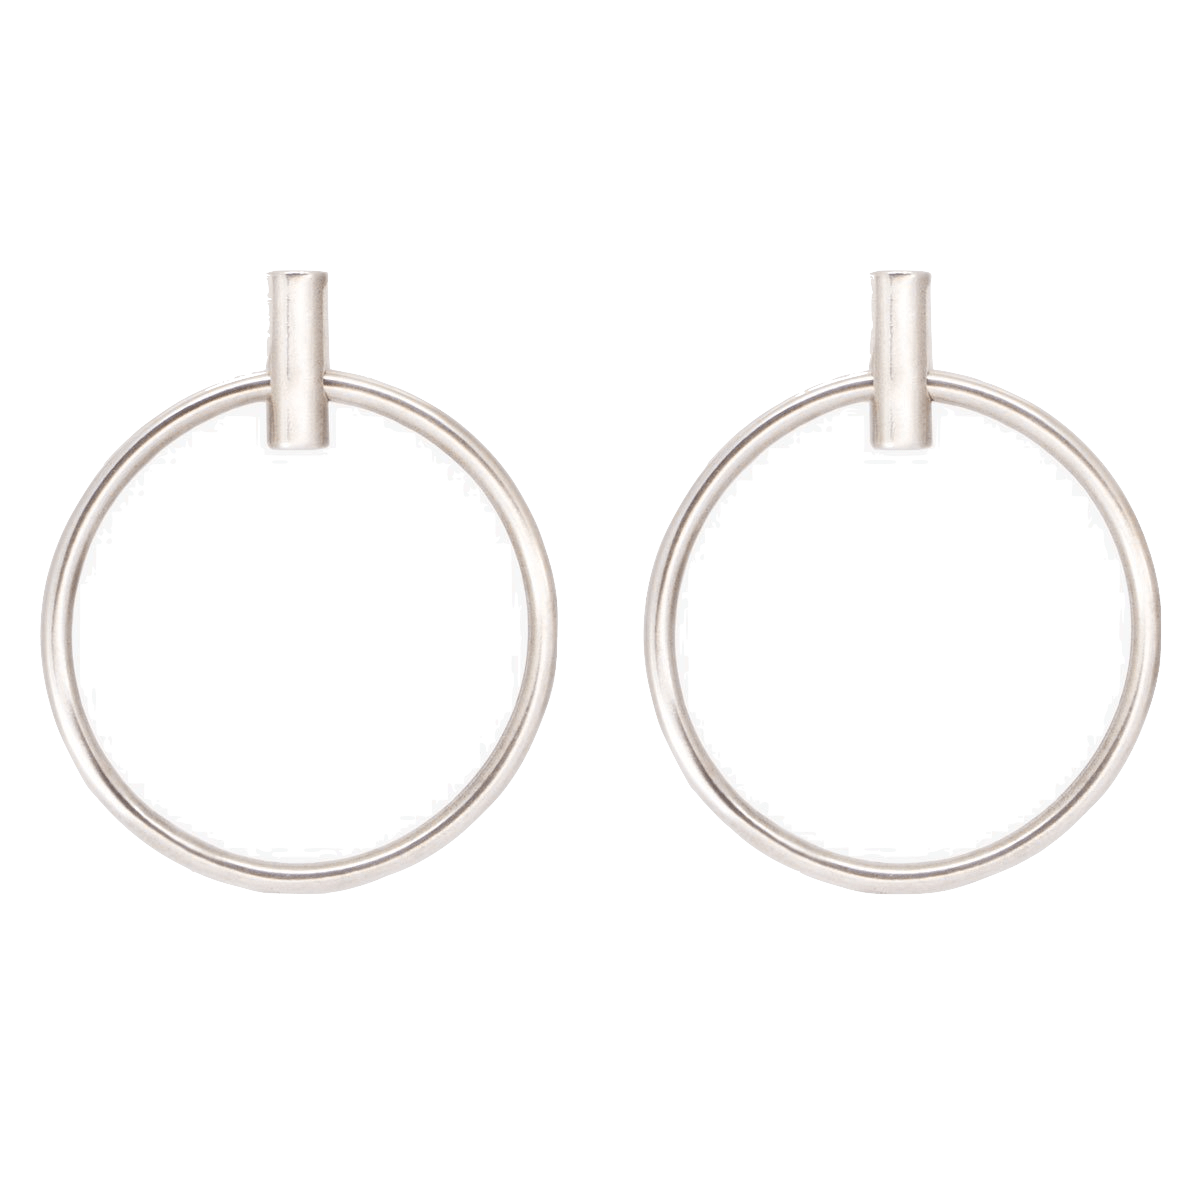 Sterling Silver Plated Earrings - E0042 MET00-CXC-Renee Taylor Gallery